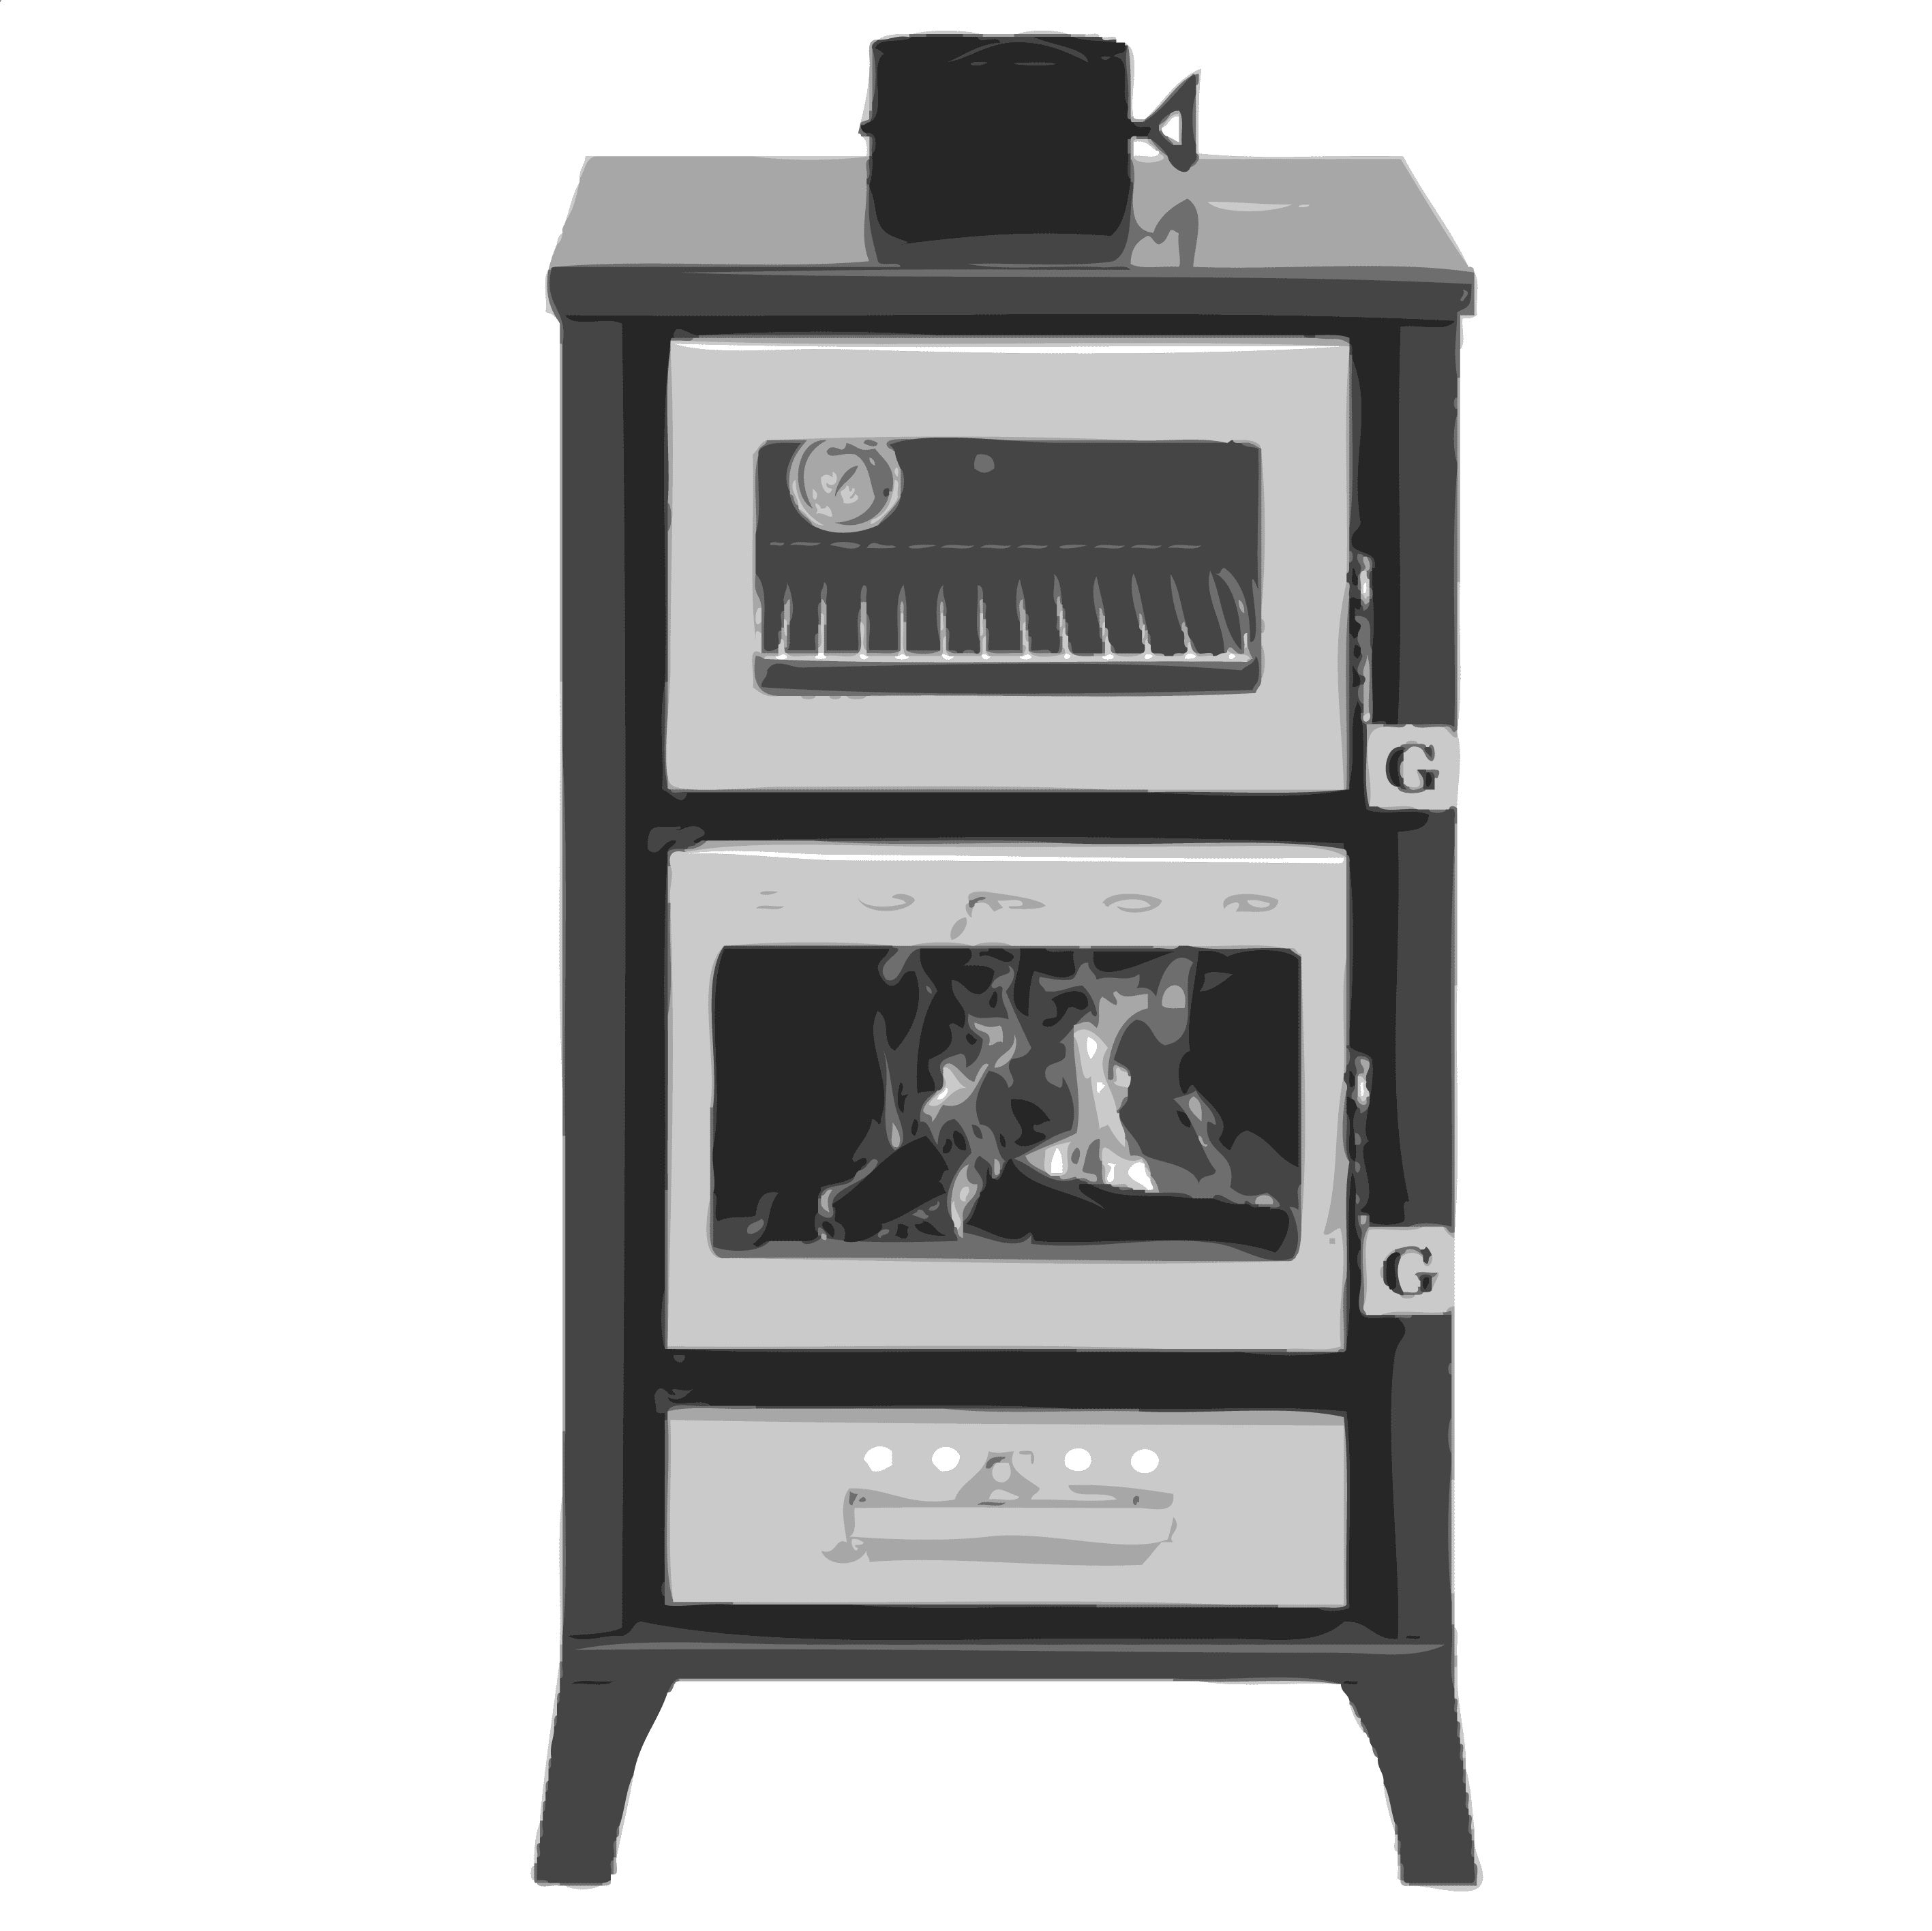 dp wood ca feet fireplace small hearth home kitchen burning square hws amazon pleasant stove